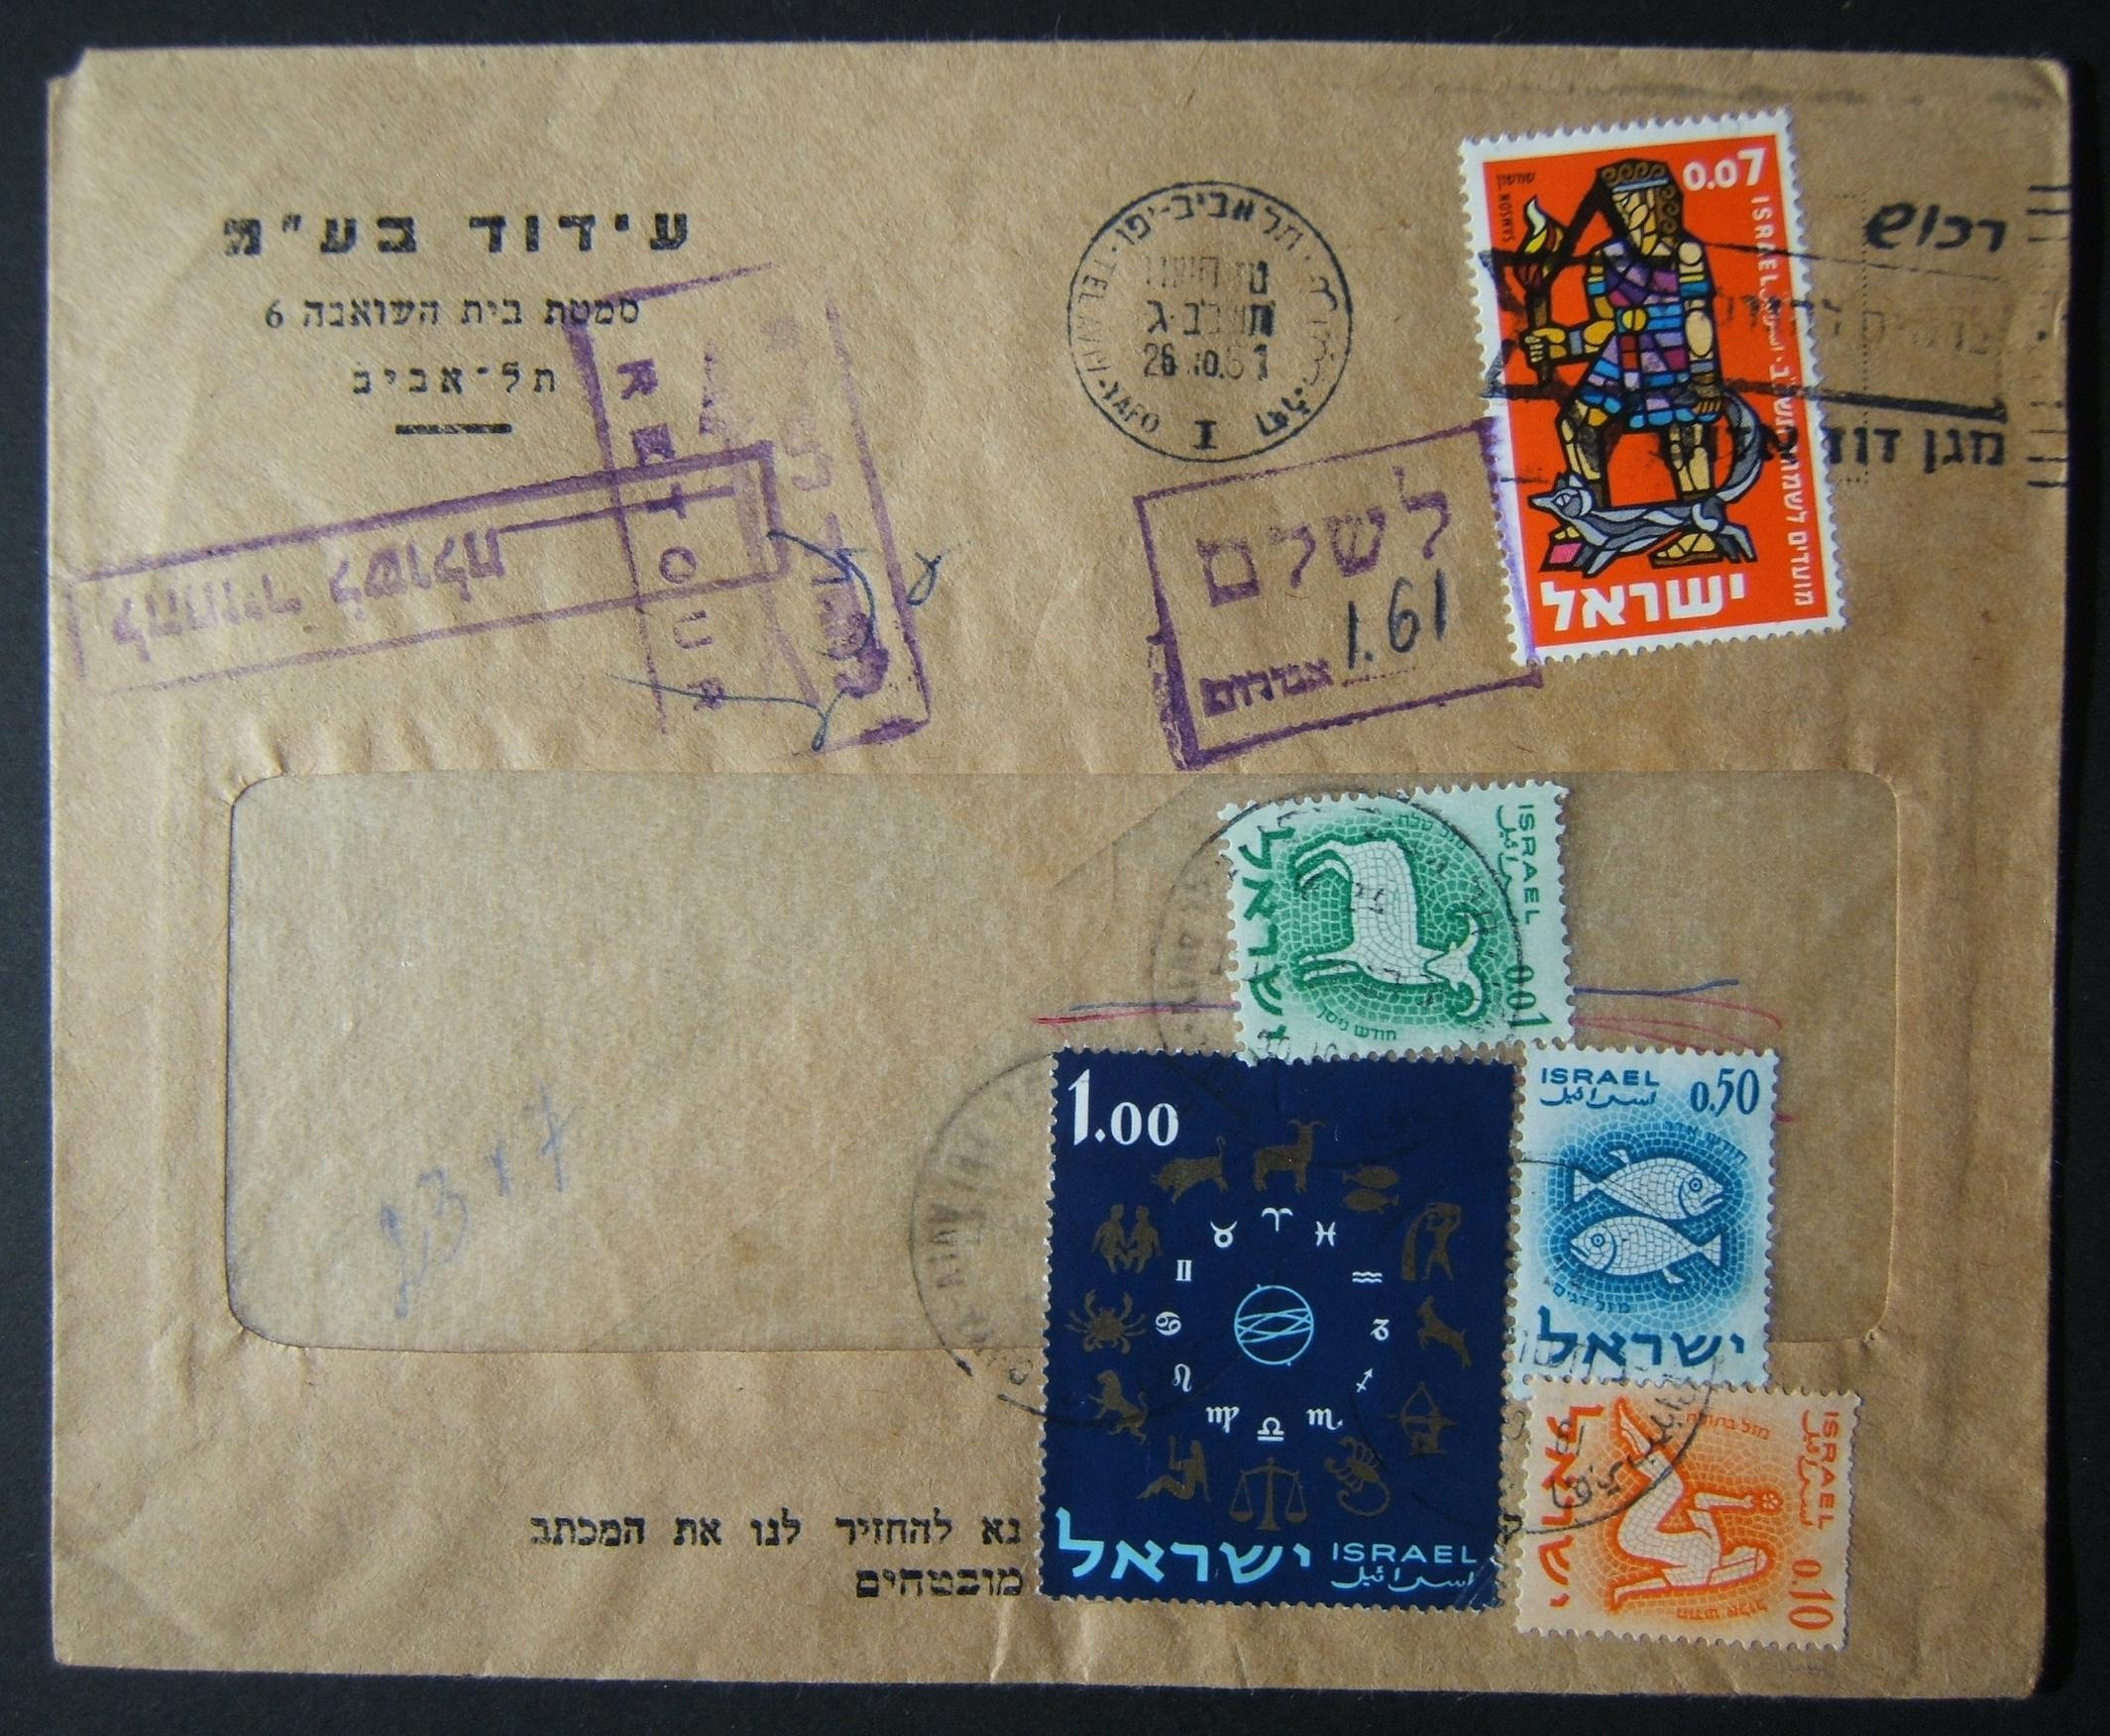 1961 domestic 'top of the pile' taxed franking: 26-10-61 printed matter commercial cover ex TLV branch of Idud Ltd. franked 7 Ag at the DO-10 period PM rate using 1961 New Year Ba2